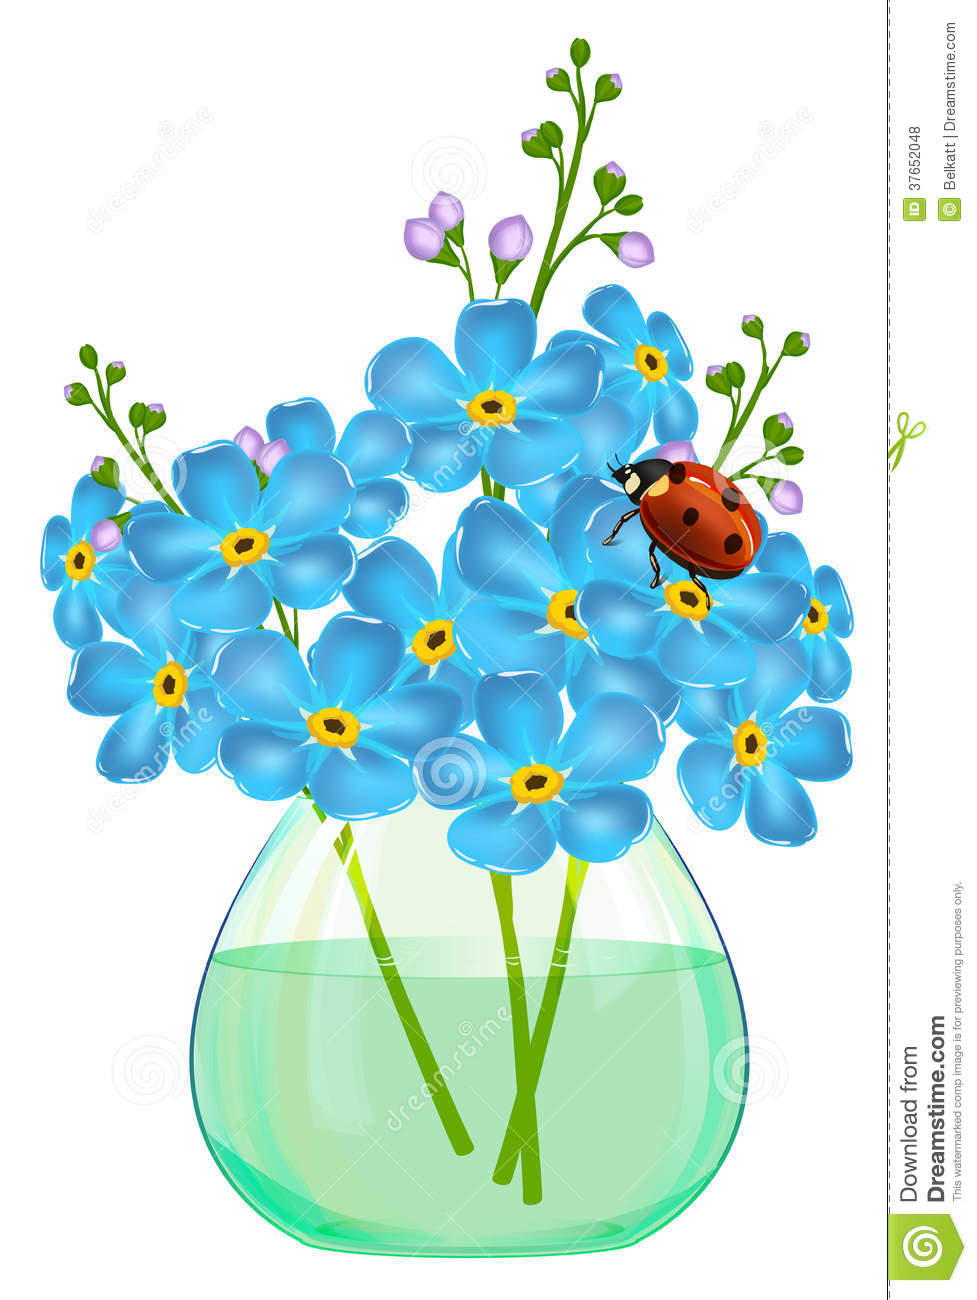 Bouquet Of Forget-me-not Flowers In A Glass Vase. Ladybird ...